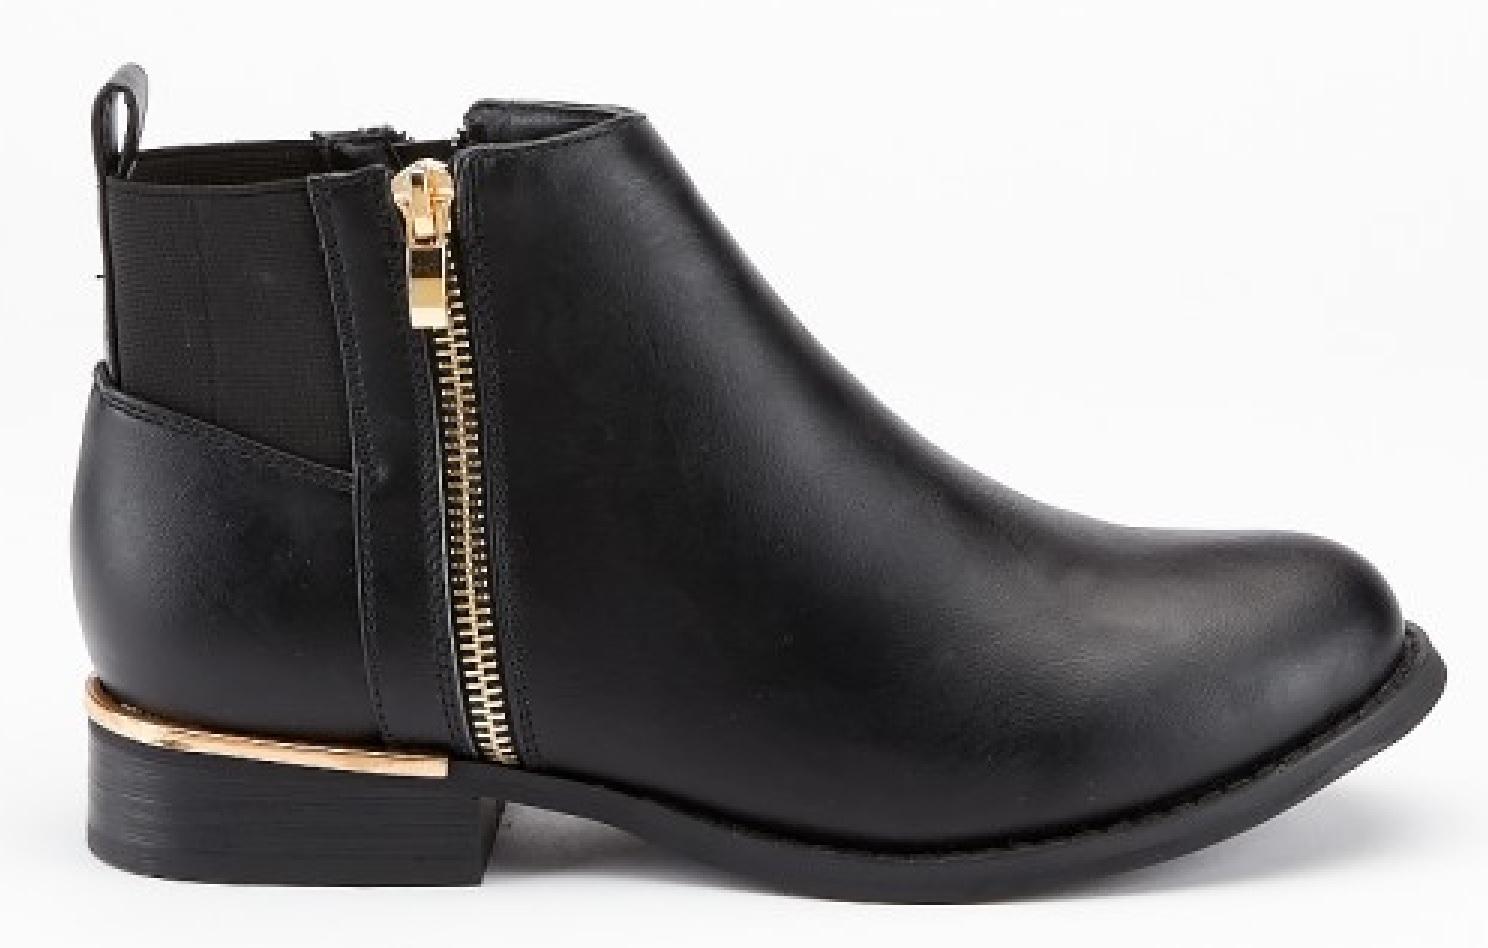 LADIES-WOMENS-BLACK-LOW-HEEL-FLAT-CHELSEA-GOLD-ZIP-UP-ANKLE-SHOES-BOOTS-SIZE-3-8 thumbnail 2